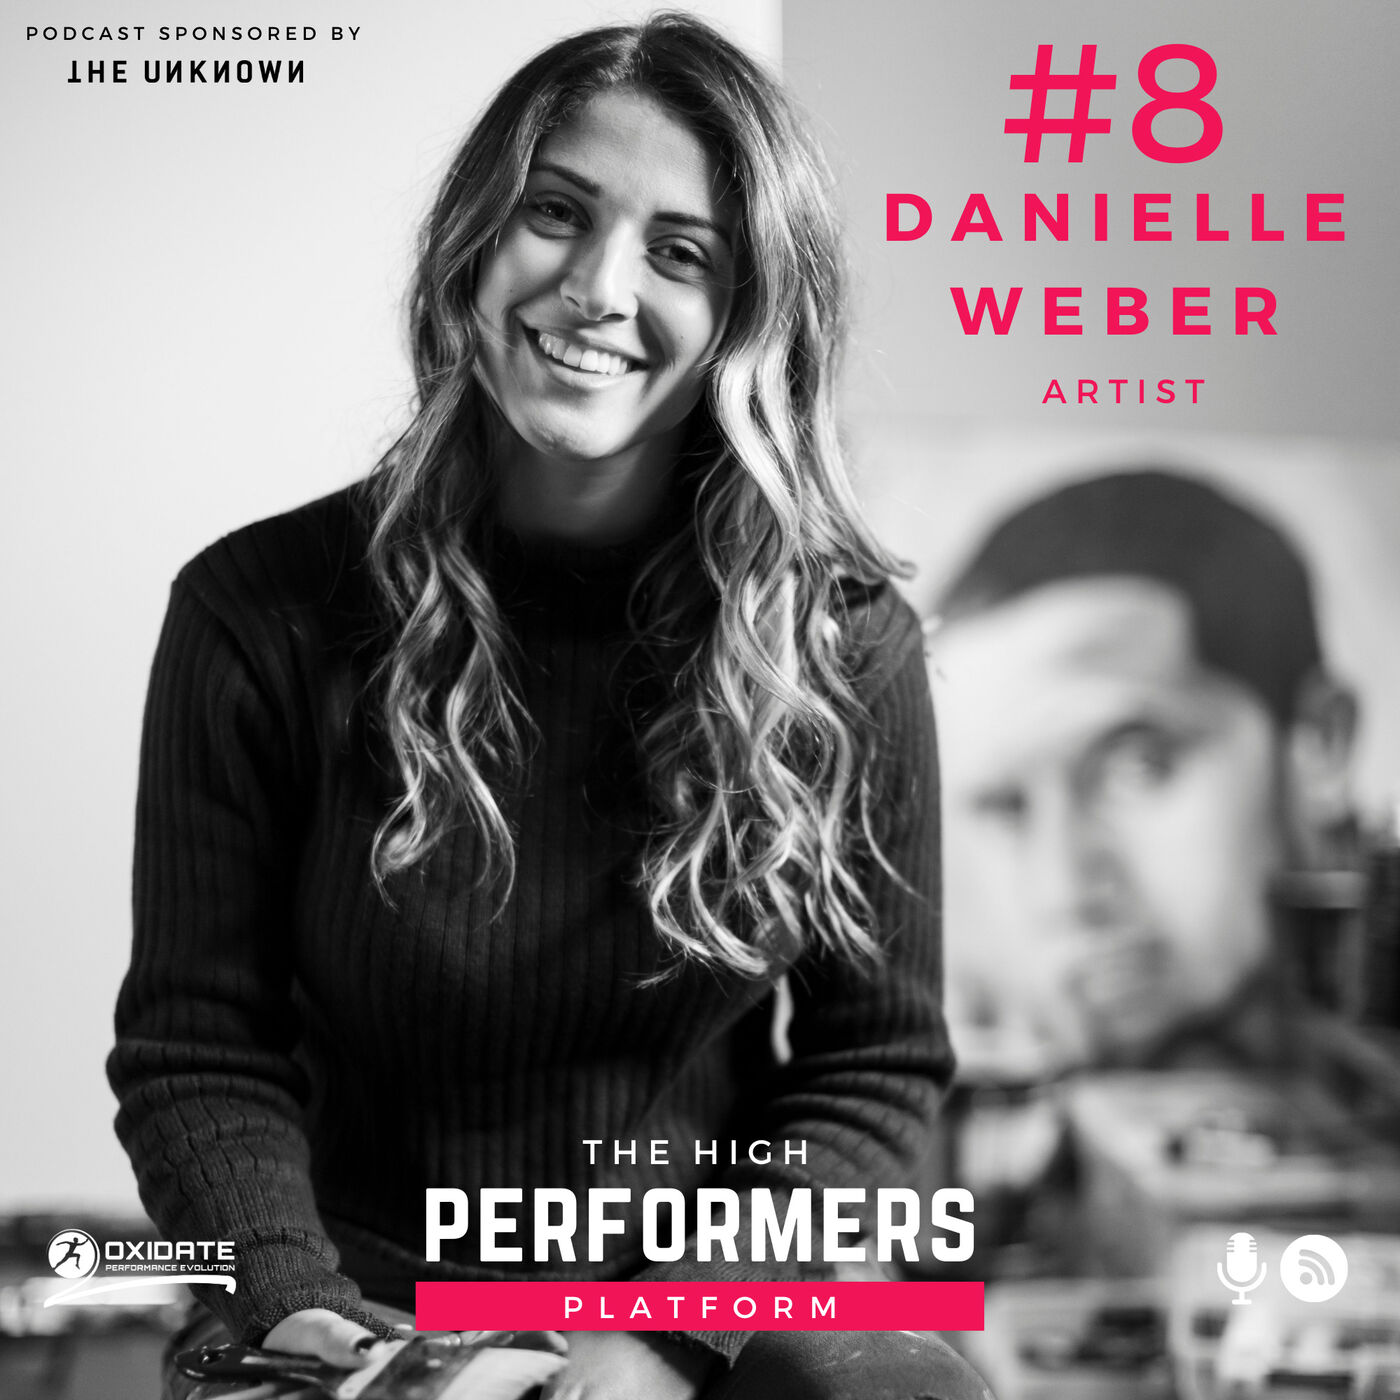 #8 Danielle Weber - Famous Melbourne based Artist - One incredibly talented human being